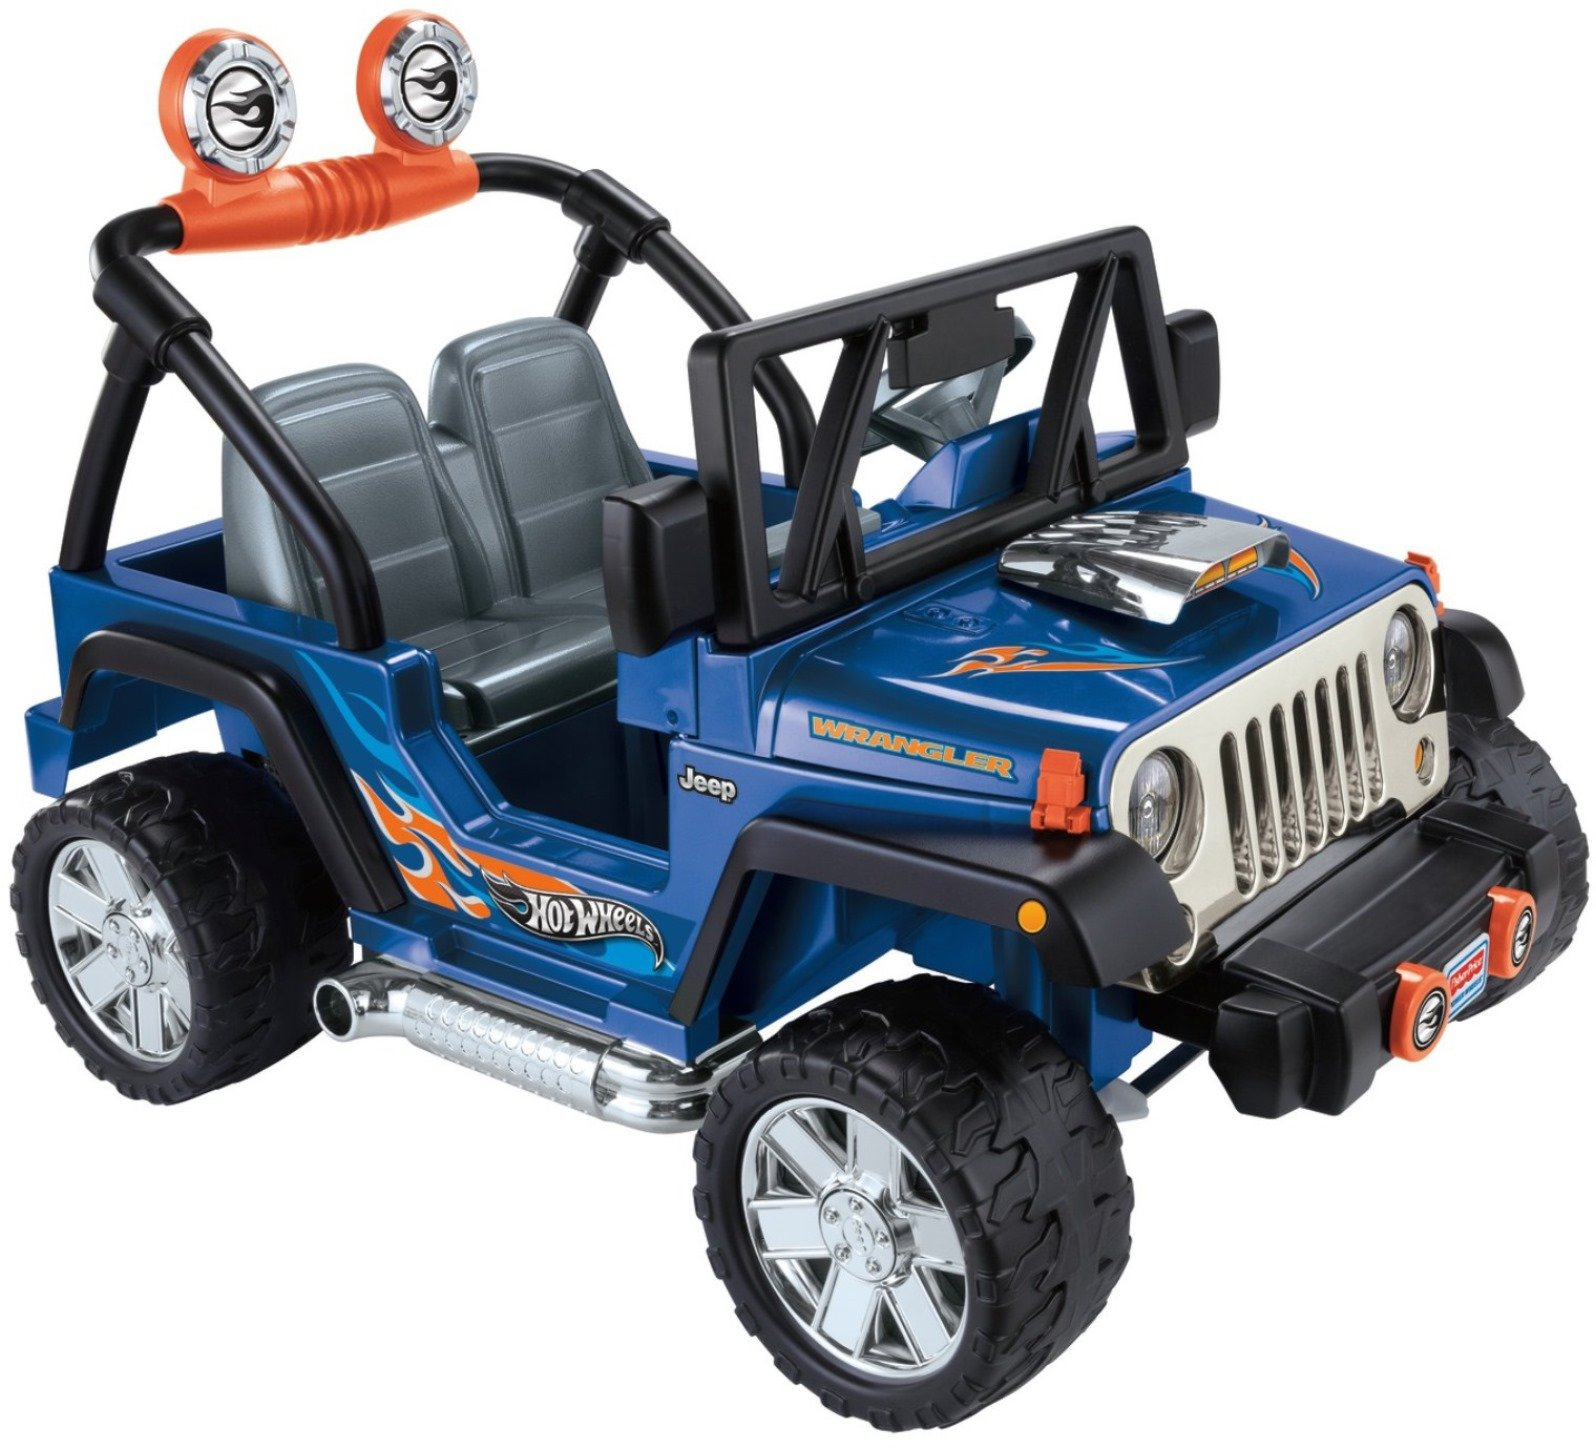 Power Wheels Hot Wheels Jeep Wrangler, Blue (12V) by Power Wheels (Image #6)